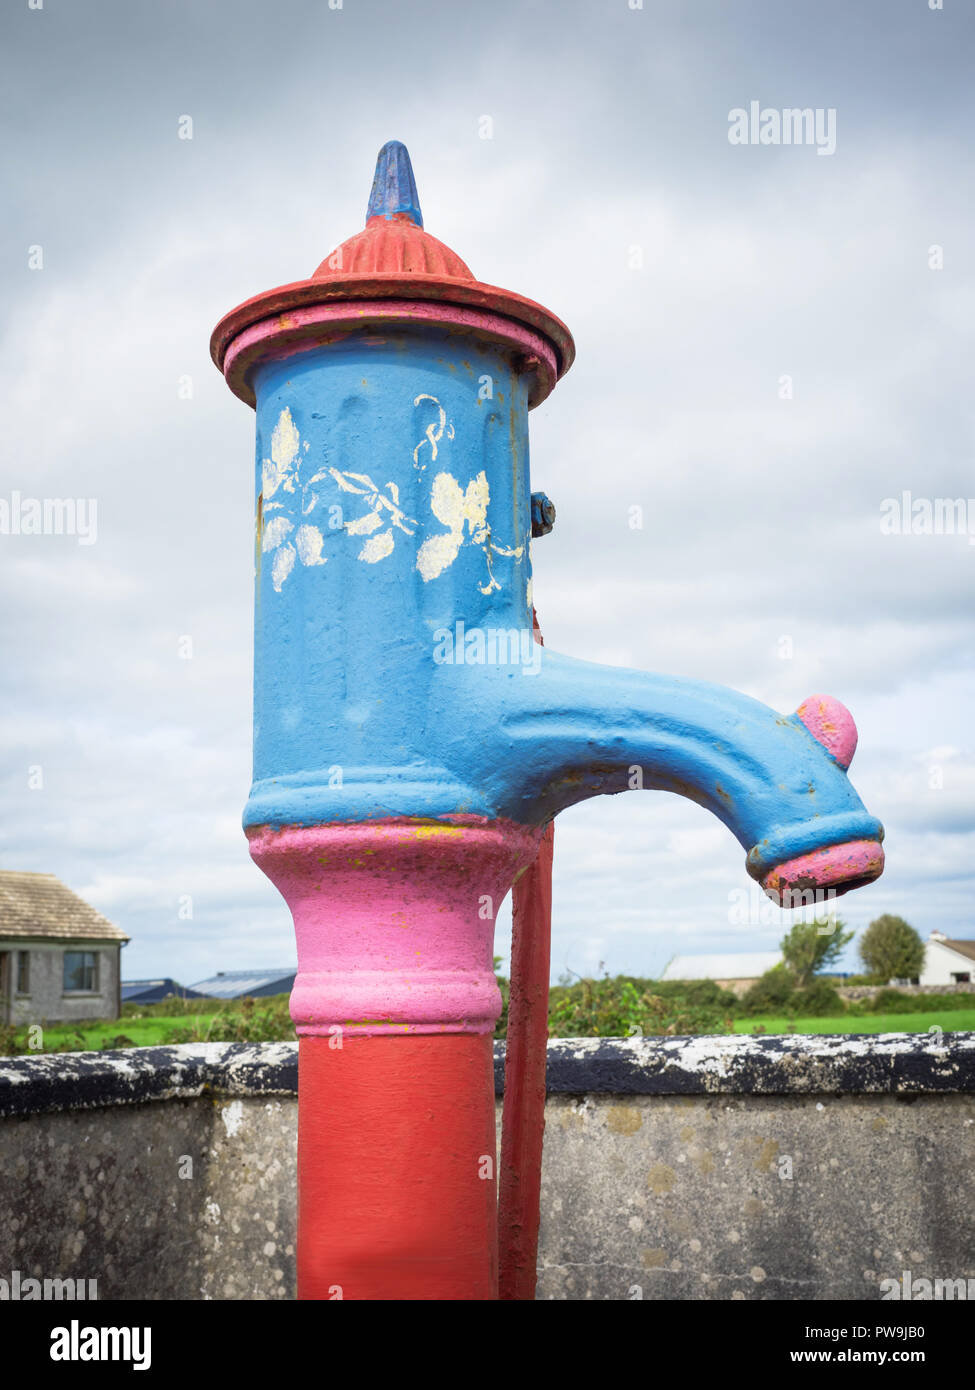 A traditional water pump in Cloughanover, near Headford in County Galway, Ireland. Stock Photo